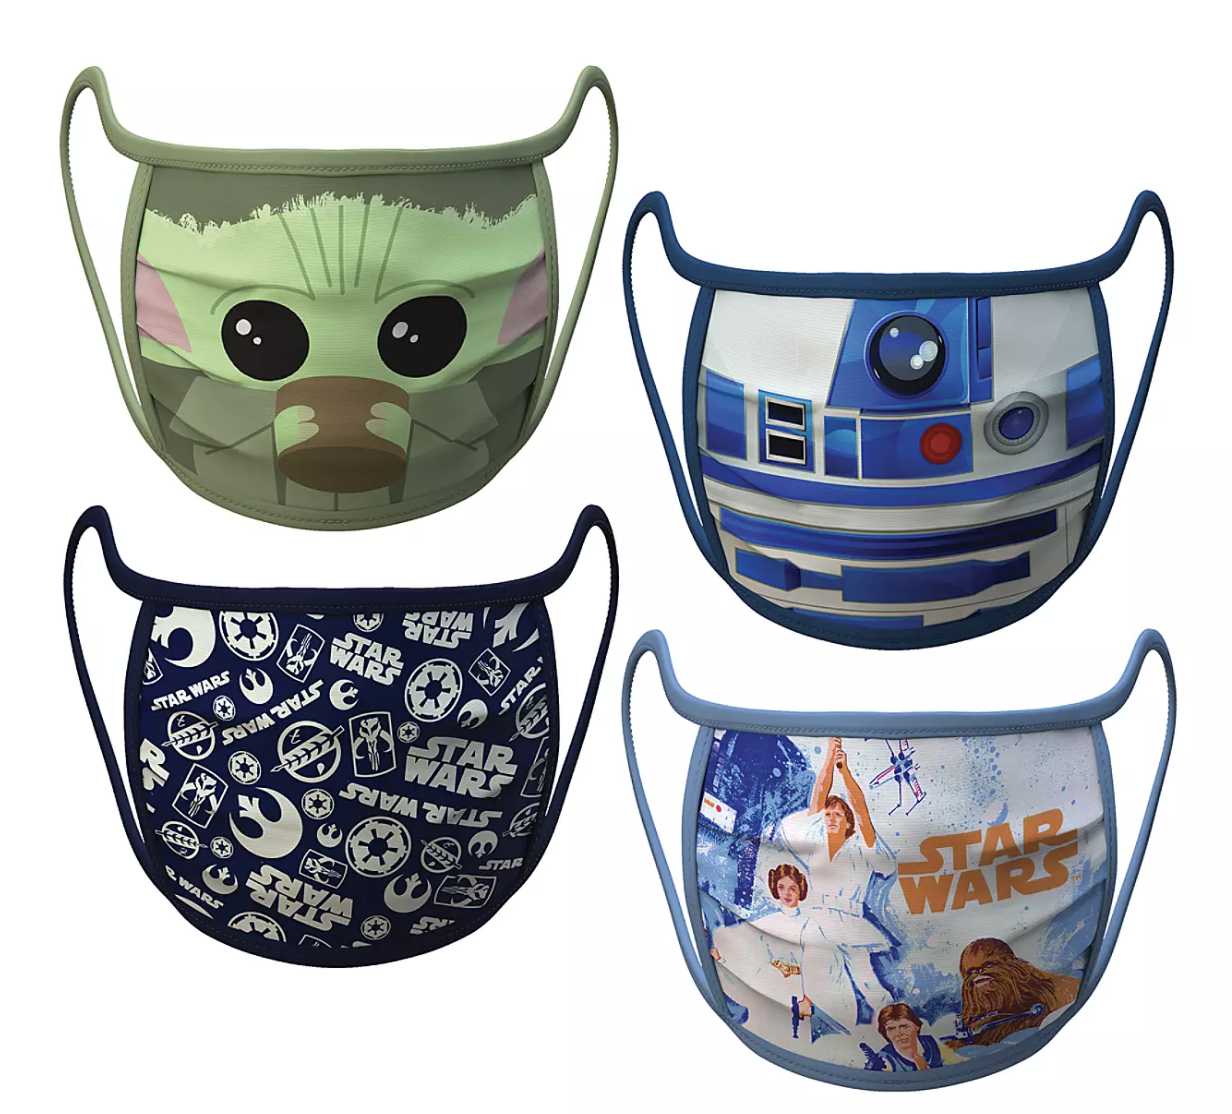 """Star Wars"" face masks with Baby Yoda, R2-D2, and other character designs"